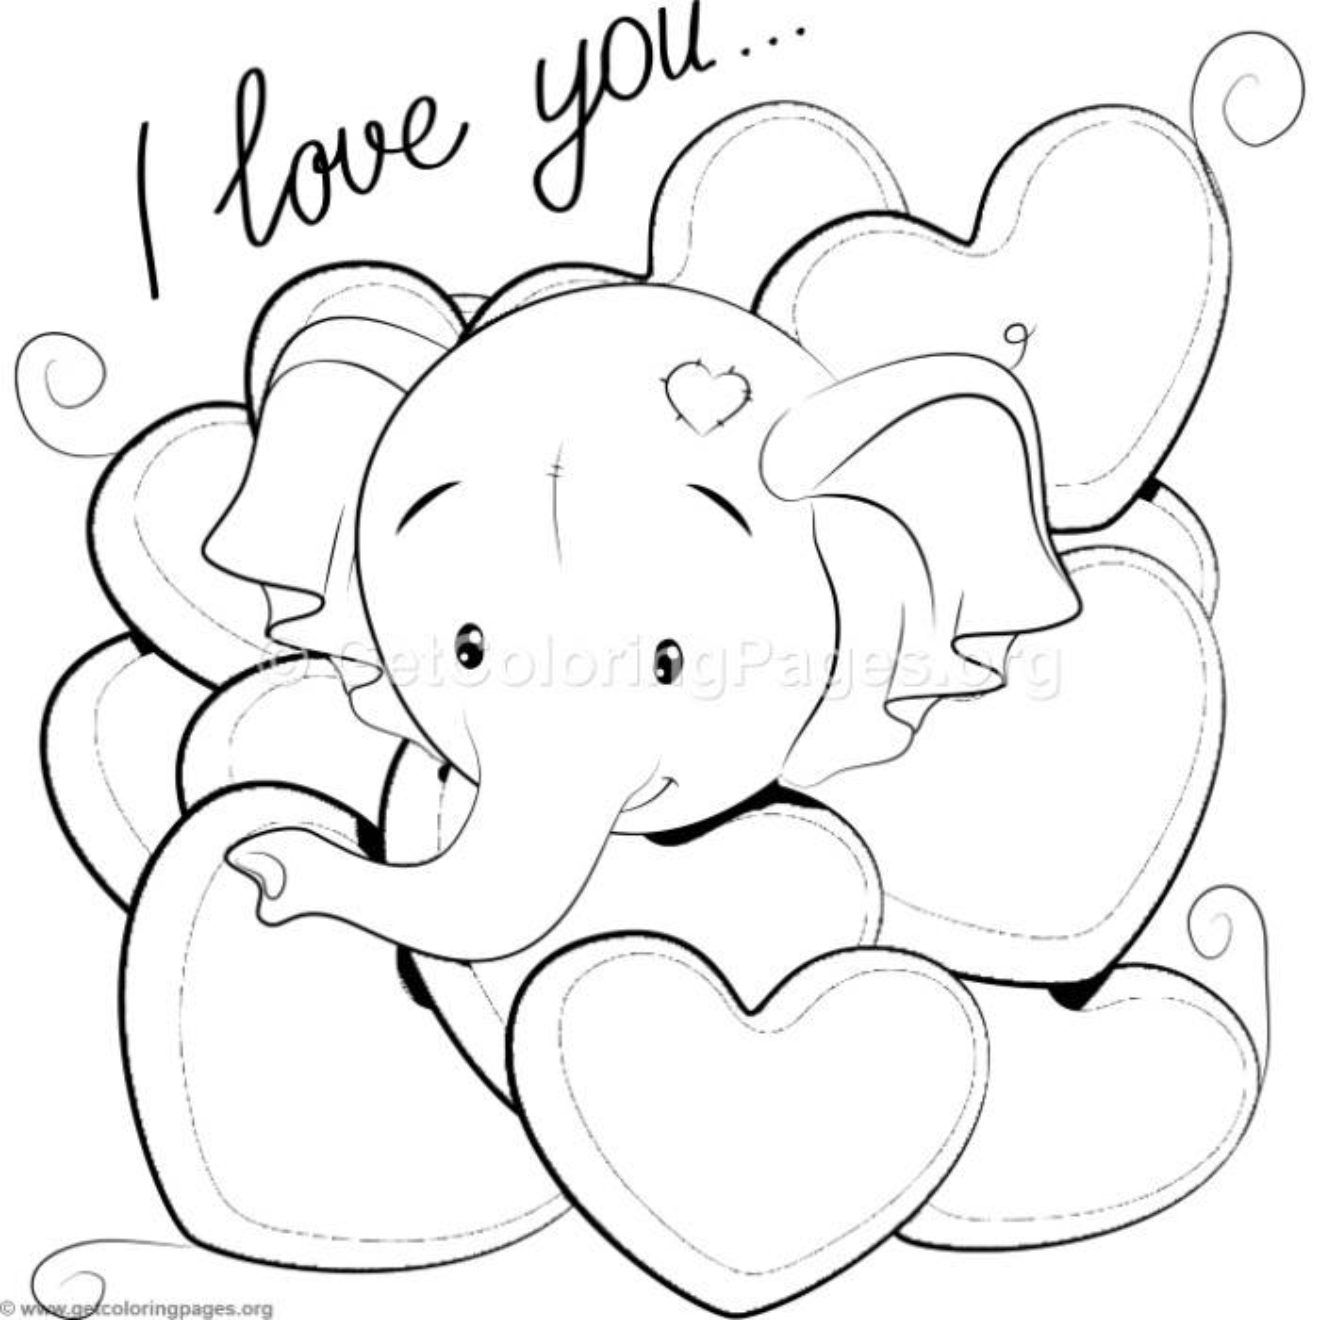 Cute Elephant Coloring Pages Elephant Coloring Page Unicorn Coloring Pages Cute Coloring Pages